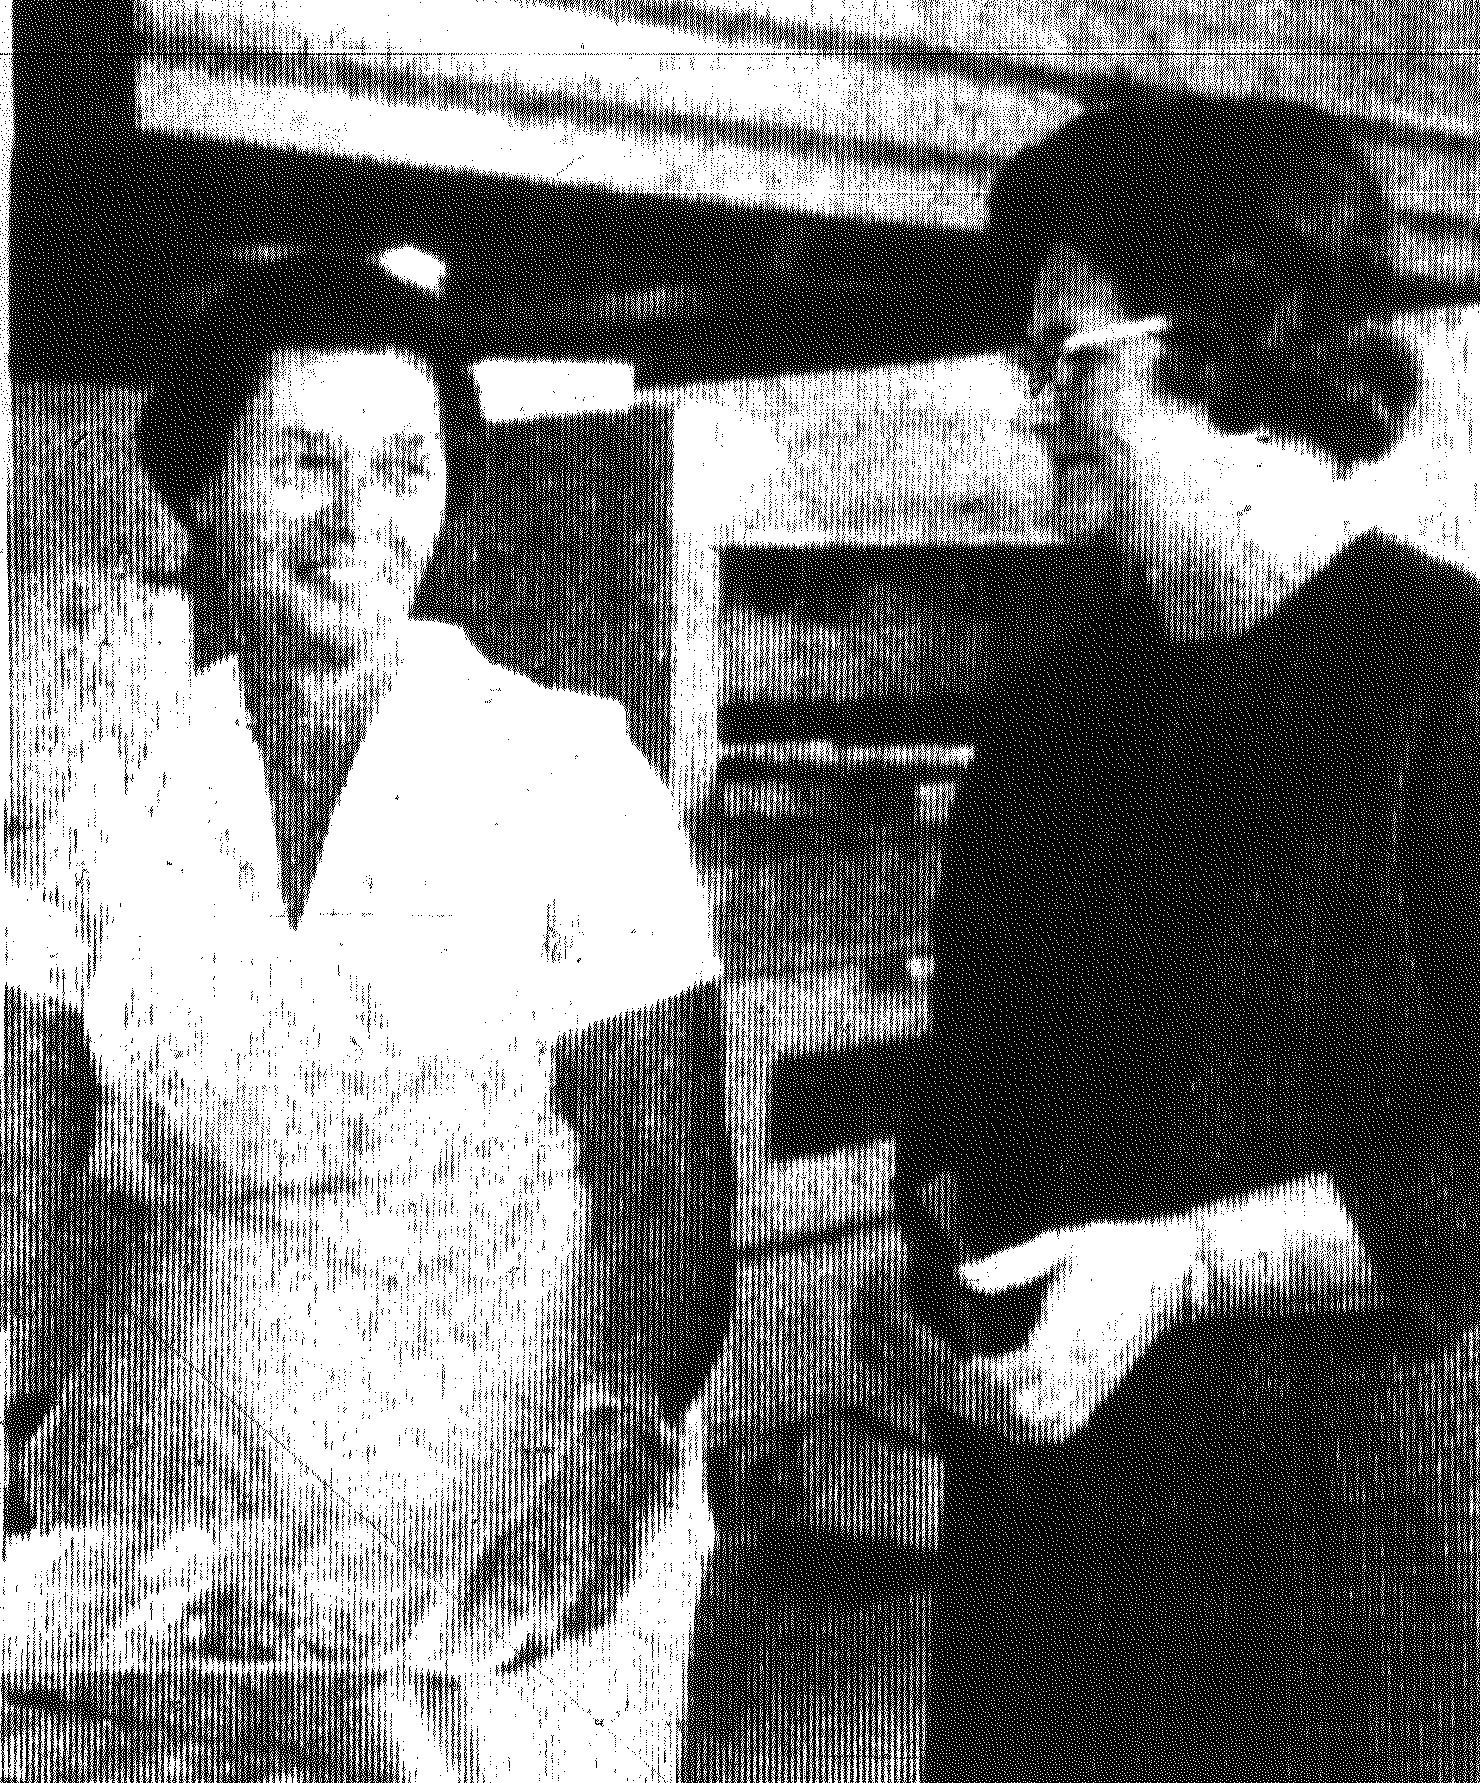 1967 - Preparing 350 turkey dinners is no small task; but Mrs. Emily Boyce; lunchroom manager at Cherryvale School; left; did just that yesterday with her staff of five who help her in the new school's modern kitchen. Here she chats with Louise F. Player; Sumter County school lunch supervisor; who dropped by yesterday to sample Cherryvale's dinner; which was served in observance of National School Lunch Week.